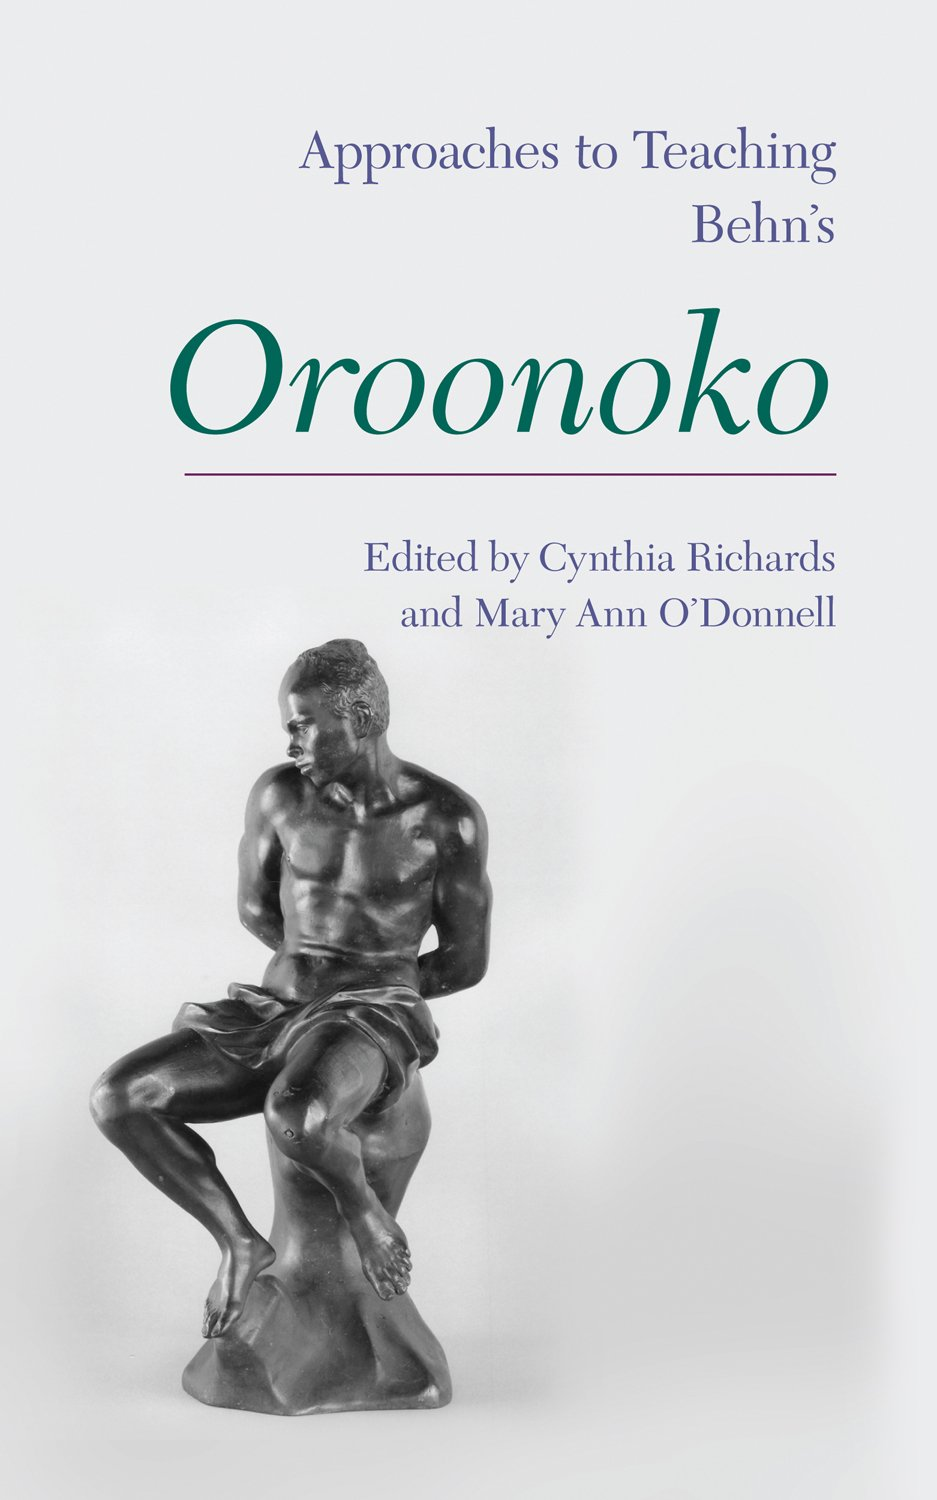 Approaches to Teaching Behn's Oroonoko (Approaches to Teaching World Literature) pdf